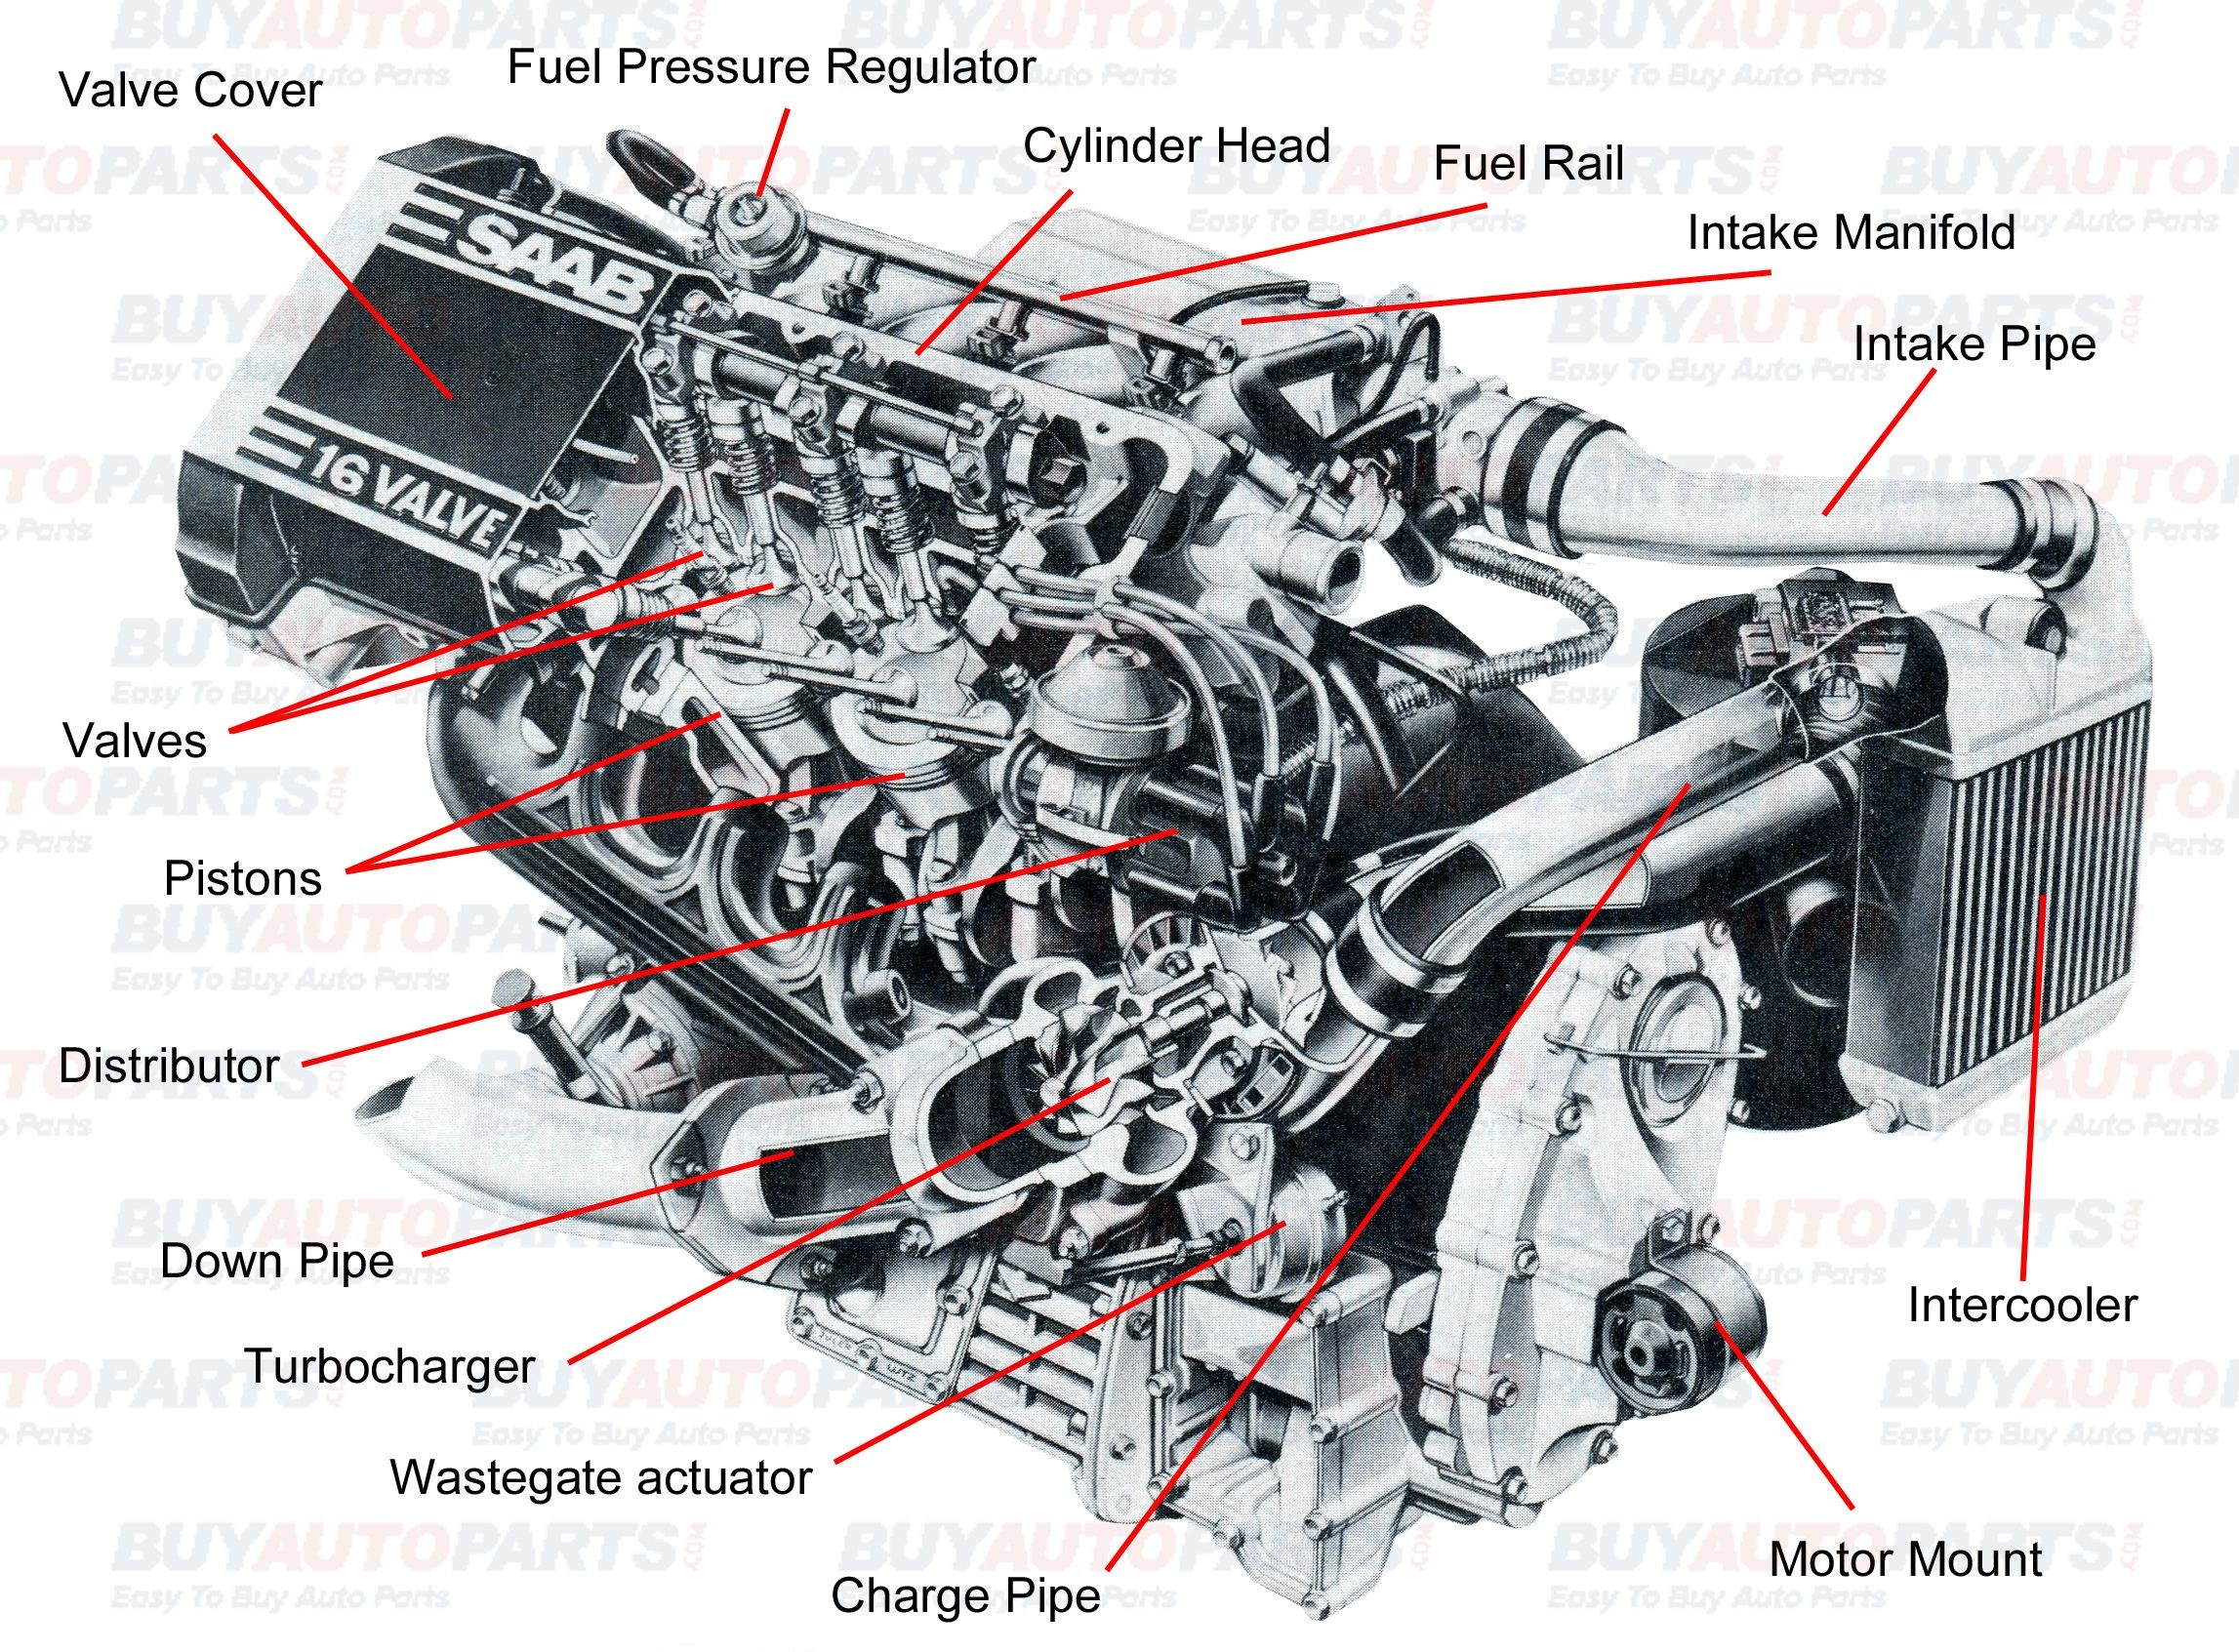 Car Engine Belt Diagram All Internal Bustion Engines Have the Same Basic Ponents the Of Car Engine Belt Diagram